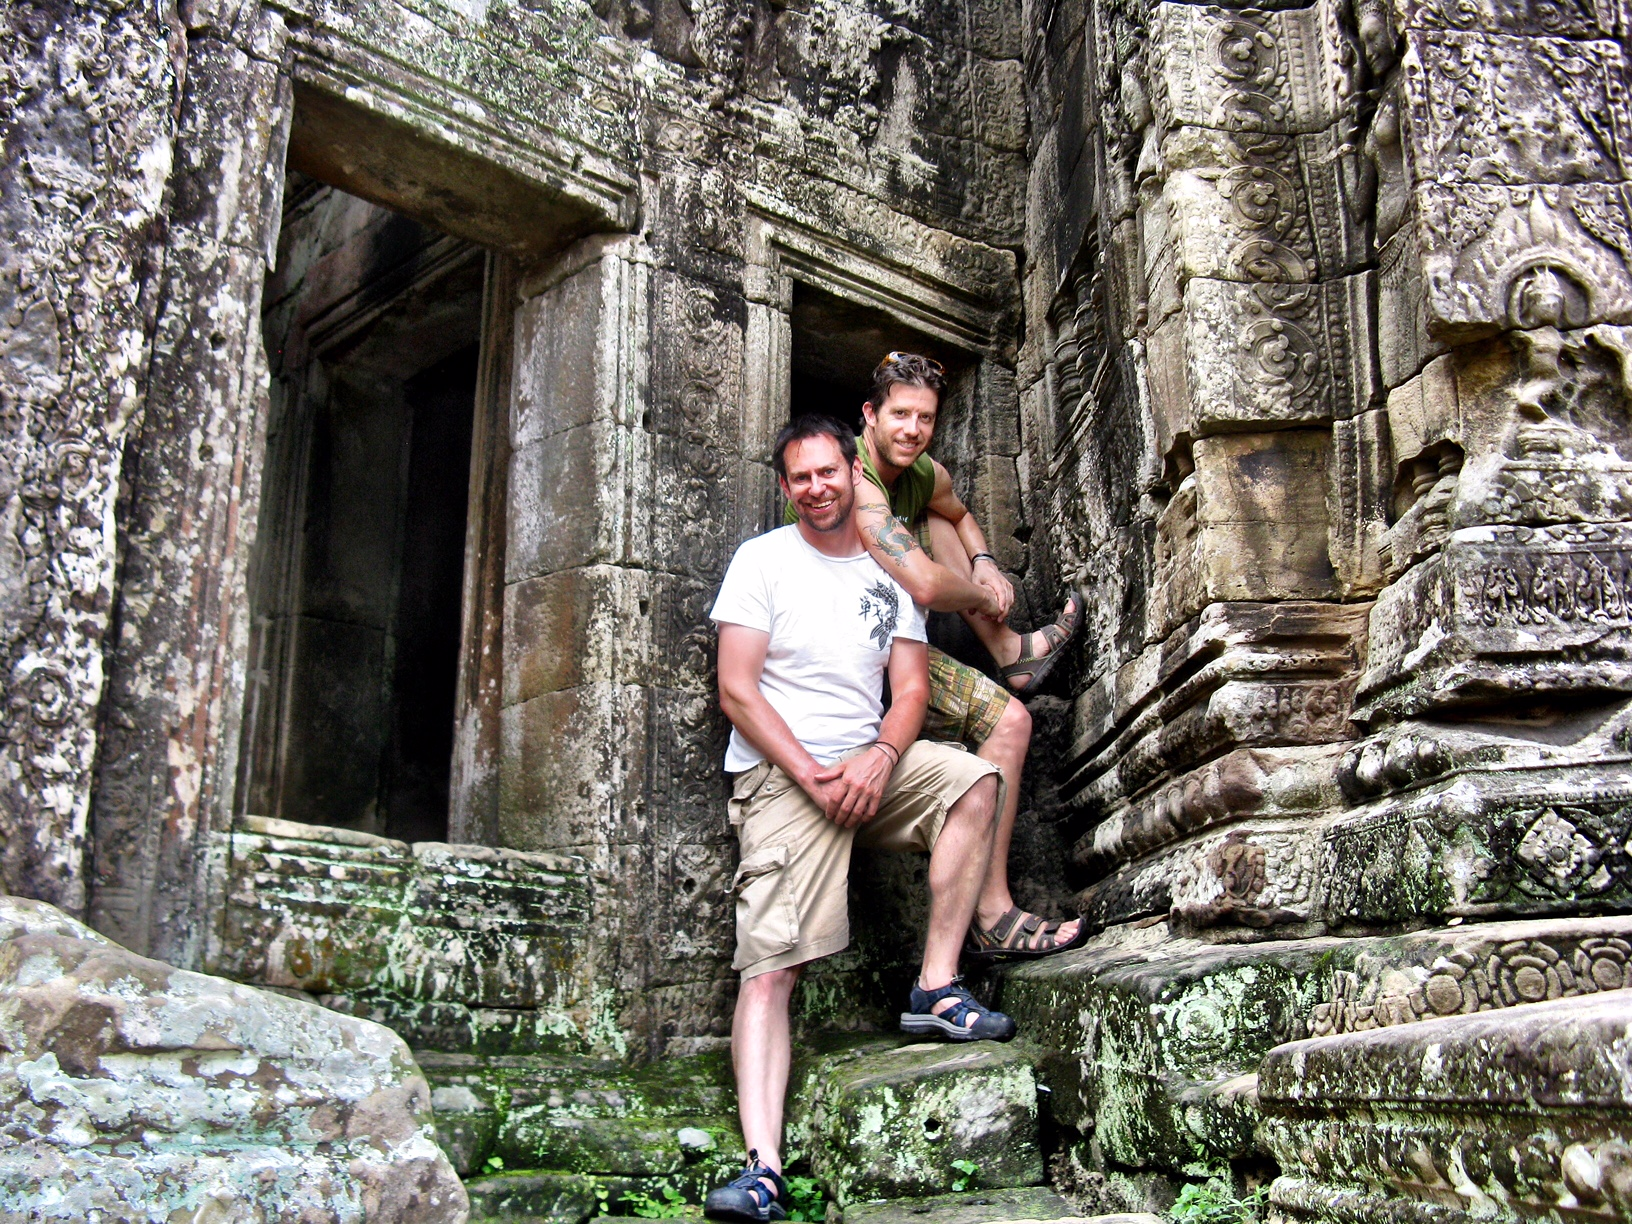 Duke and Wally were giddy kicking off their exploration of Angkor wandering Bayon, with its intricately carved bas reliefs and giant stone faces